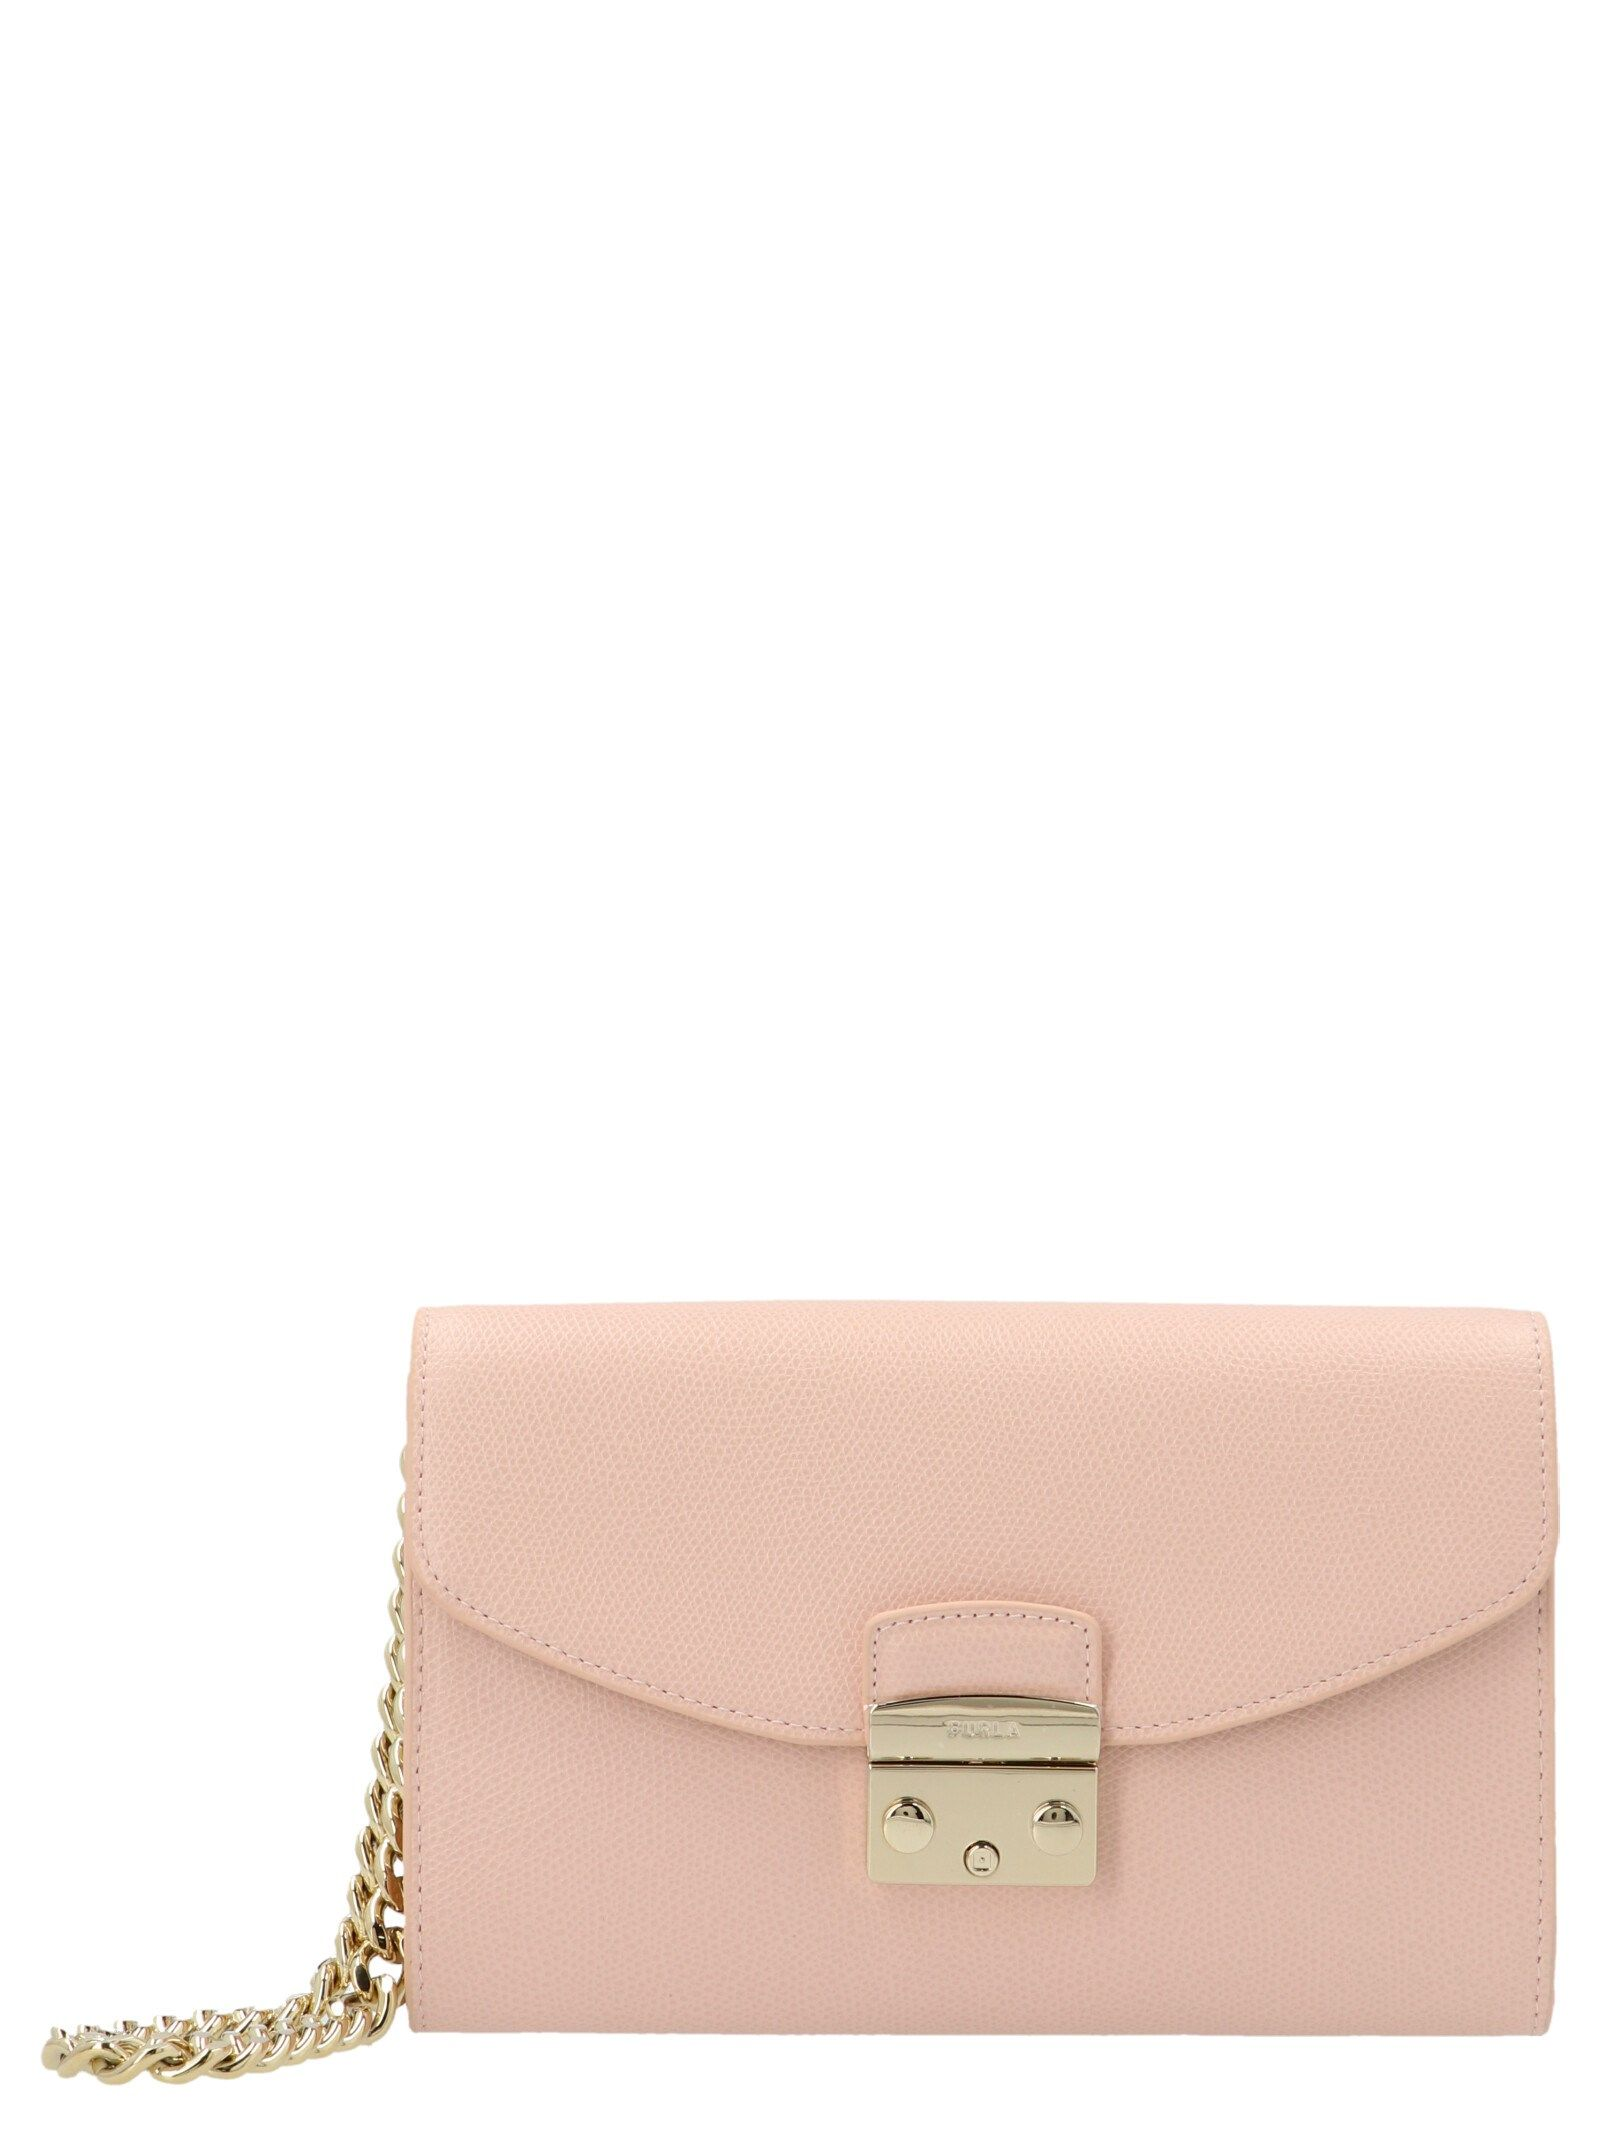 Furla Pouches FURLA WOMEN'S WE00120ARE0001BR00 PINK OTHER MATERIALS POUCH